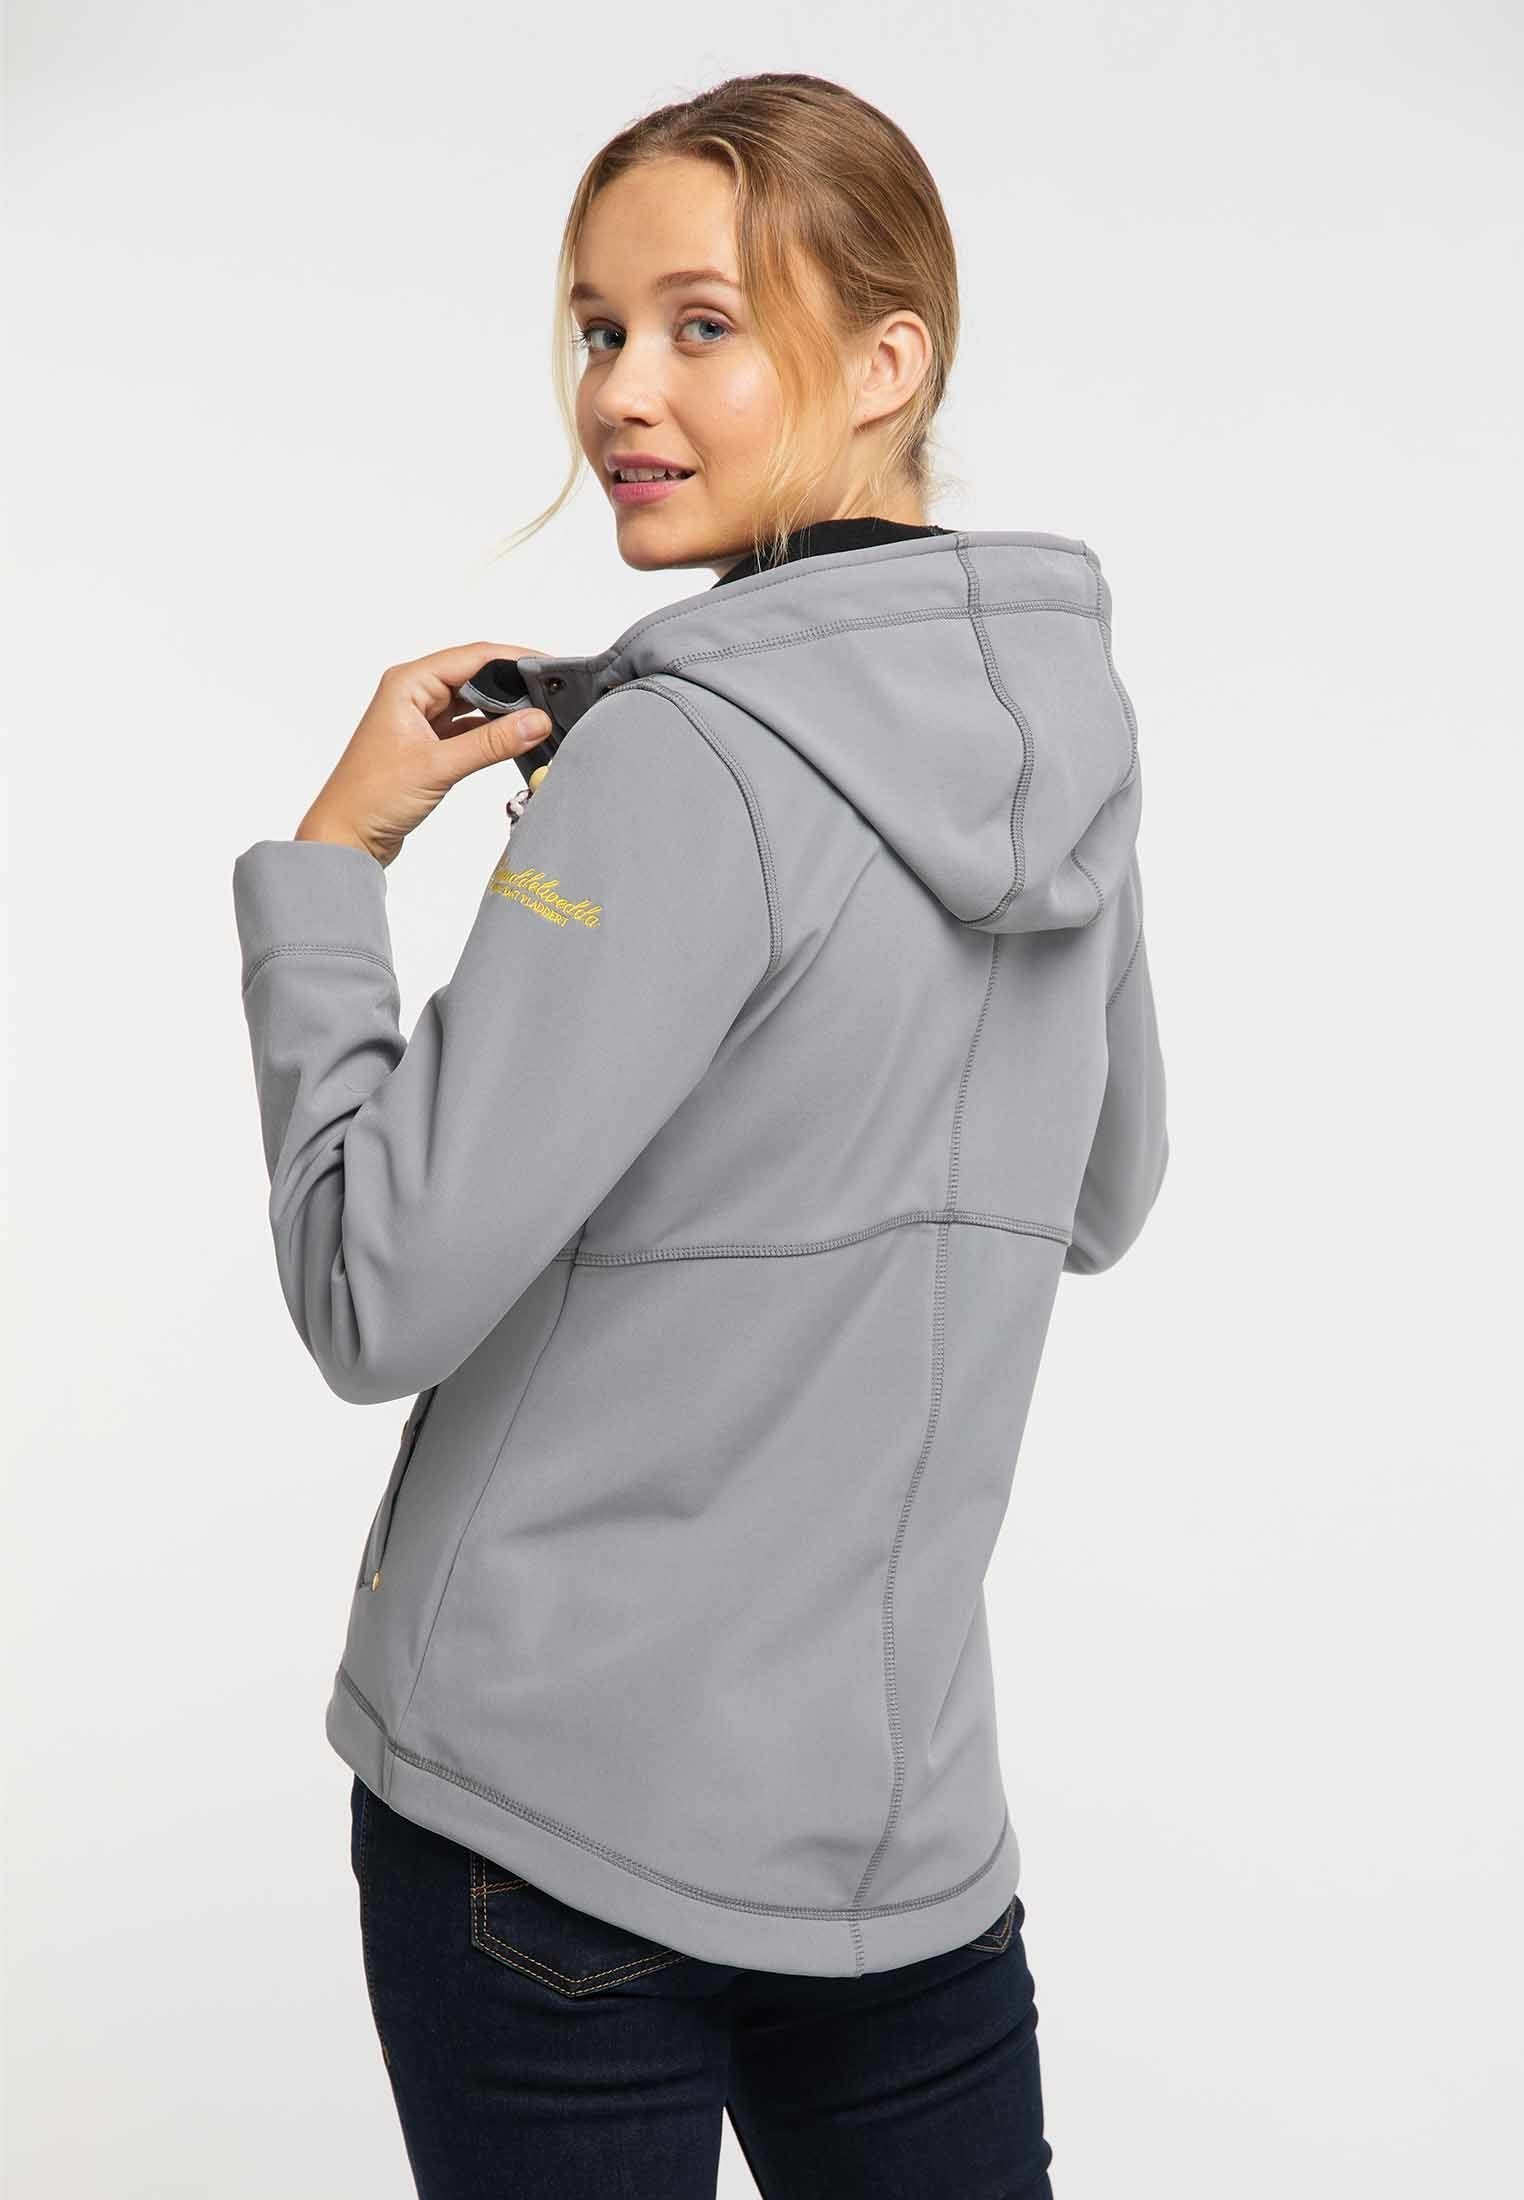 Affordable Clean And Classic Women's Clothing Schmuddelwedda Outdoor jacket gray UzAzlEqBn 03iBAp6x6